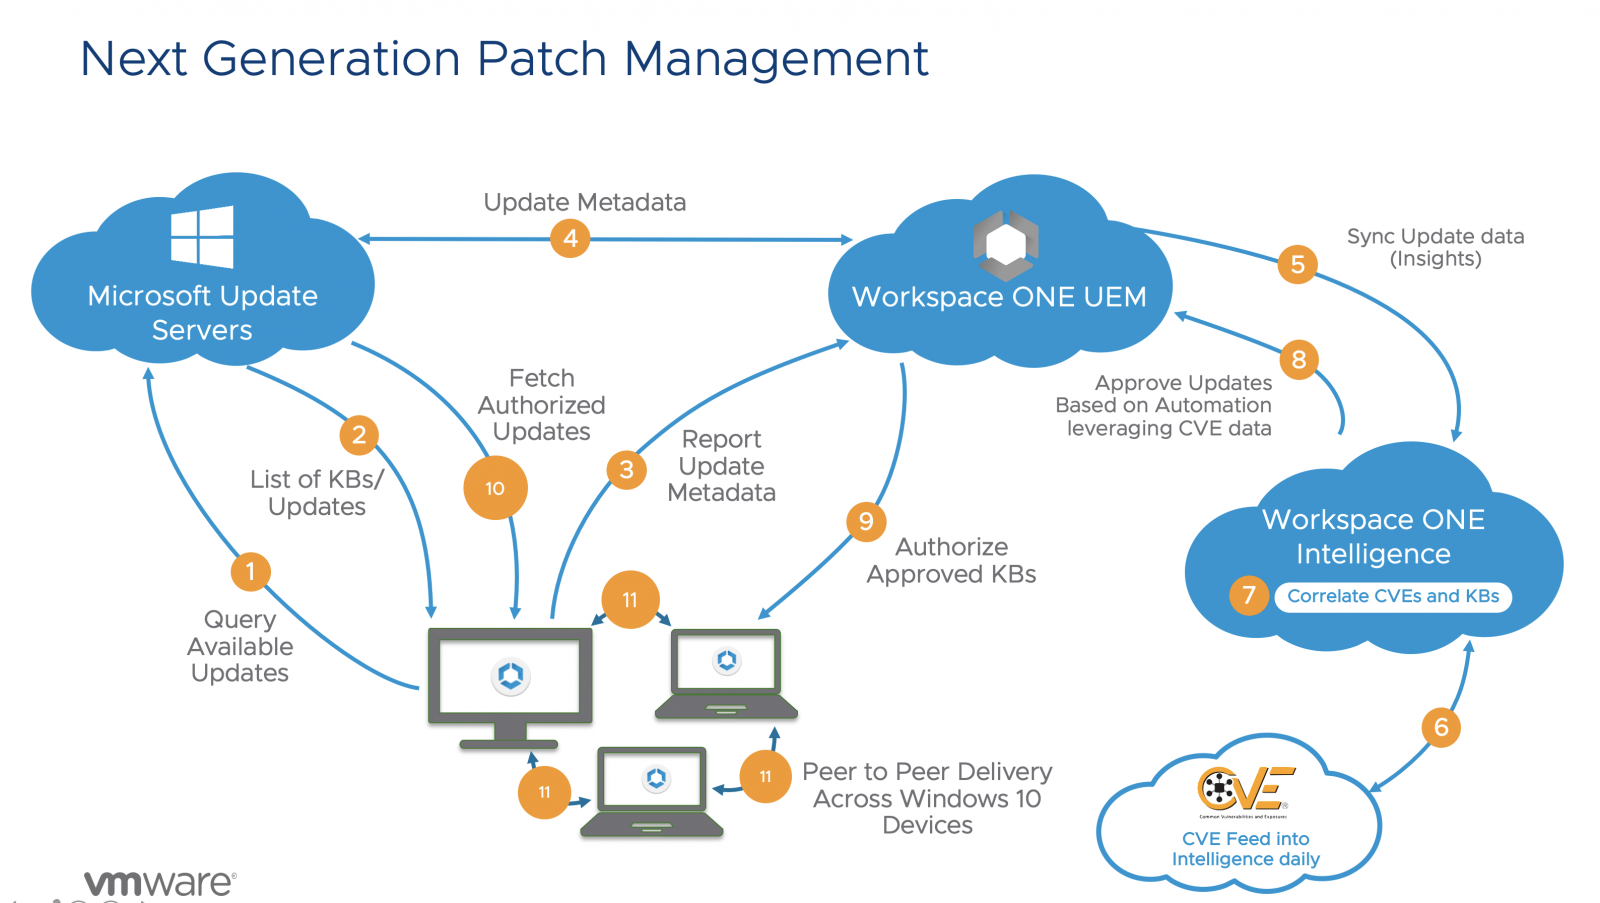 Next Generation Patch Management